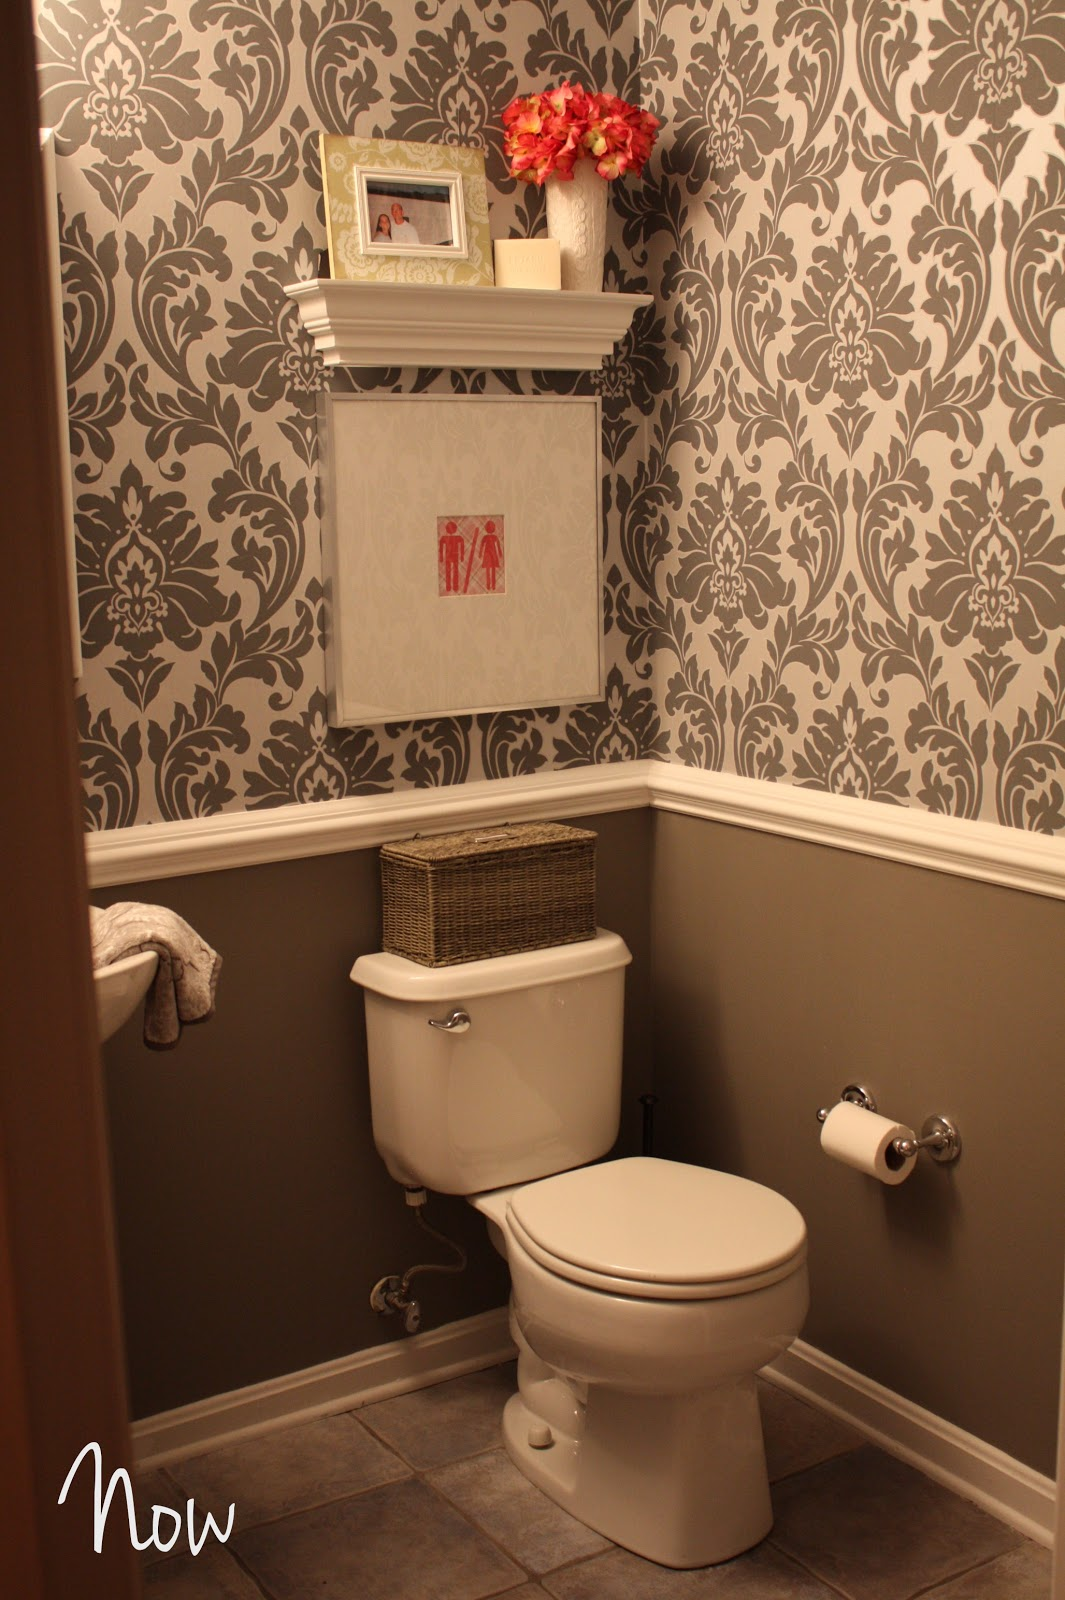 Shush In Your Home: Part 2- Powder Room Gets Some Jewelry